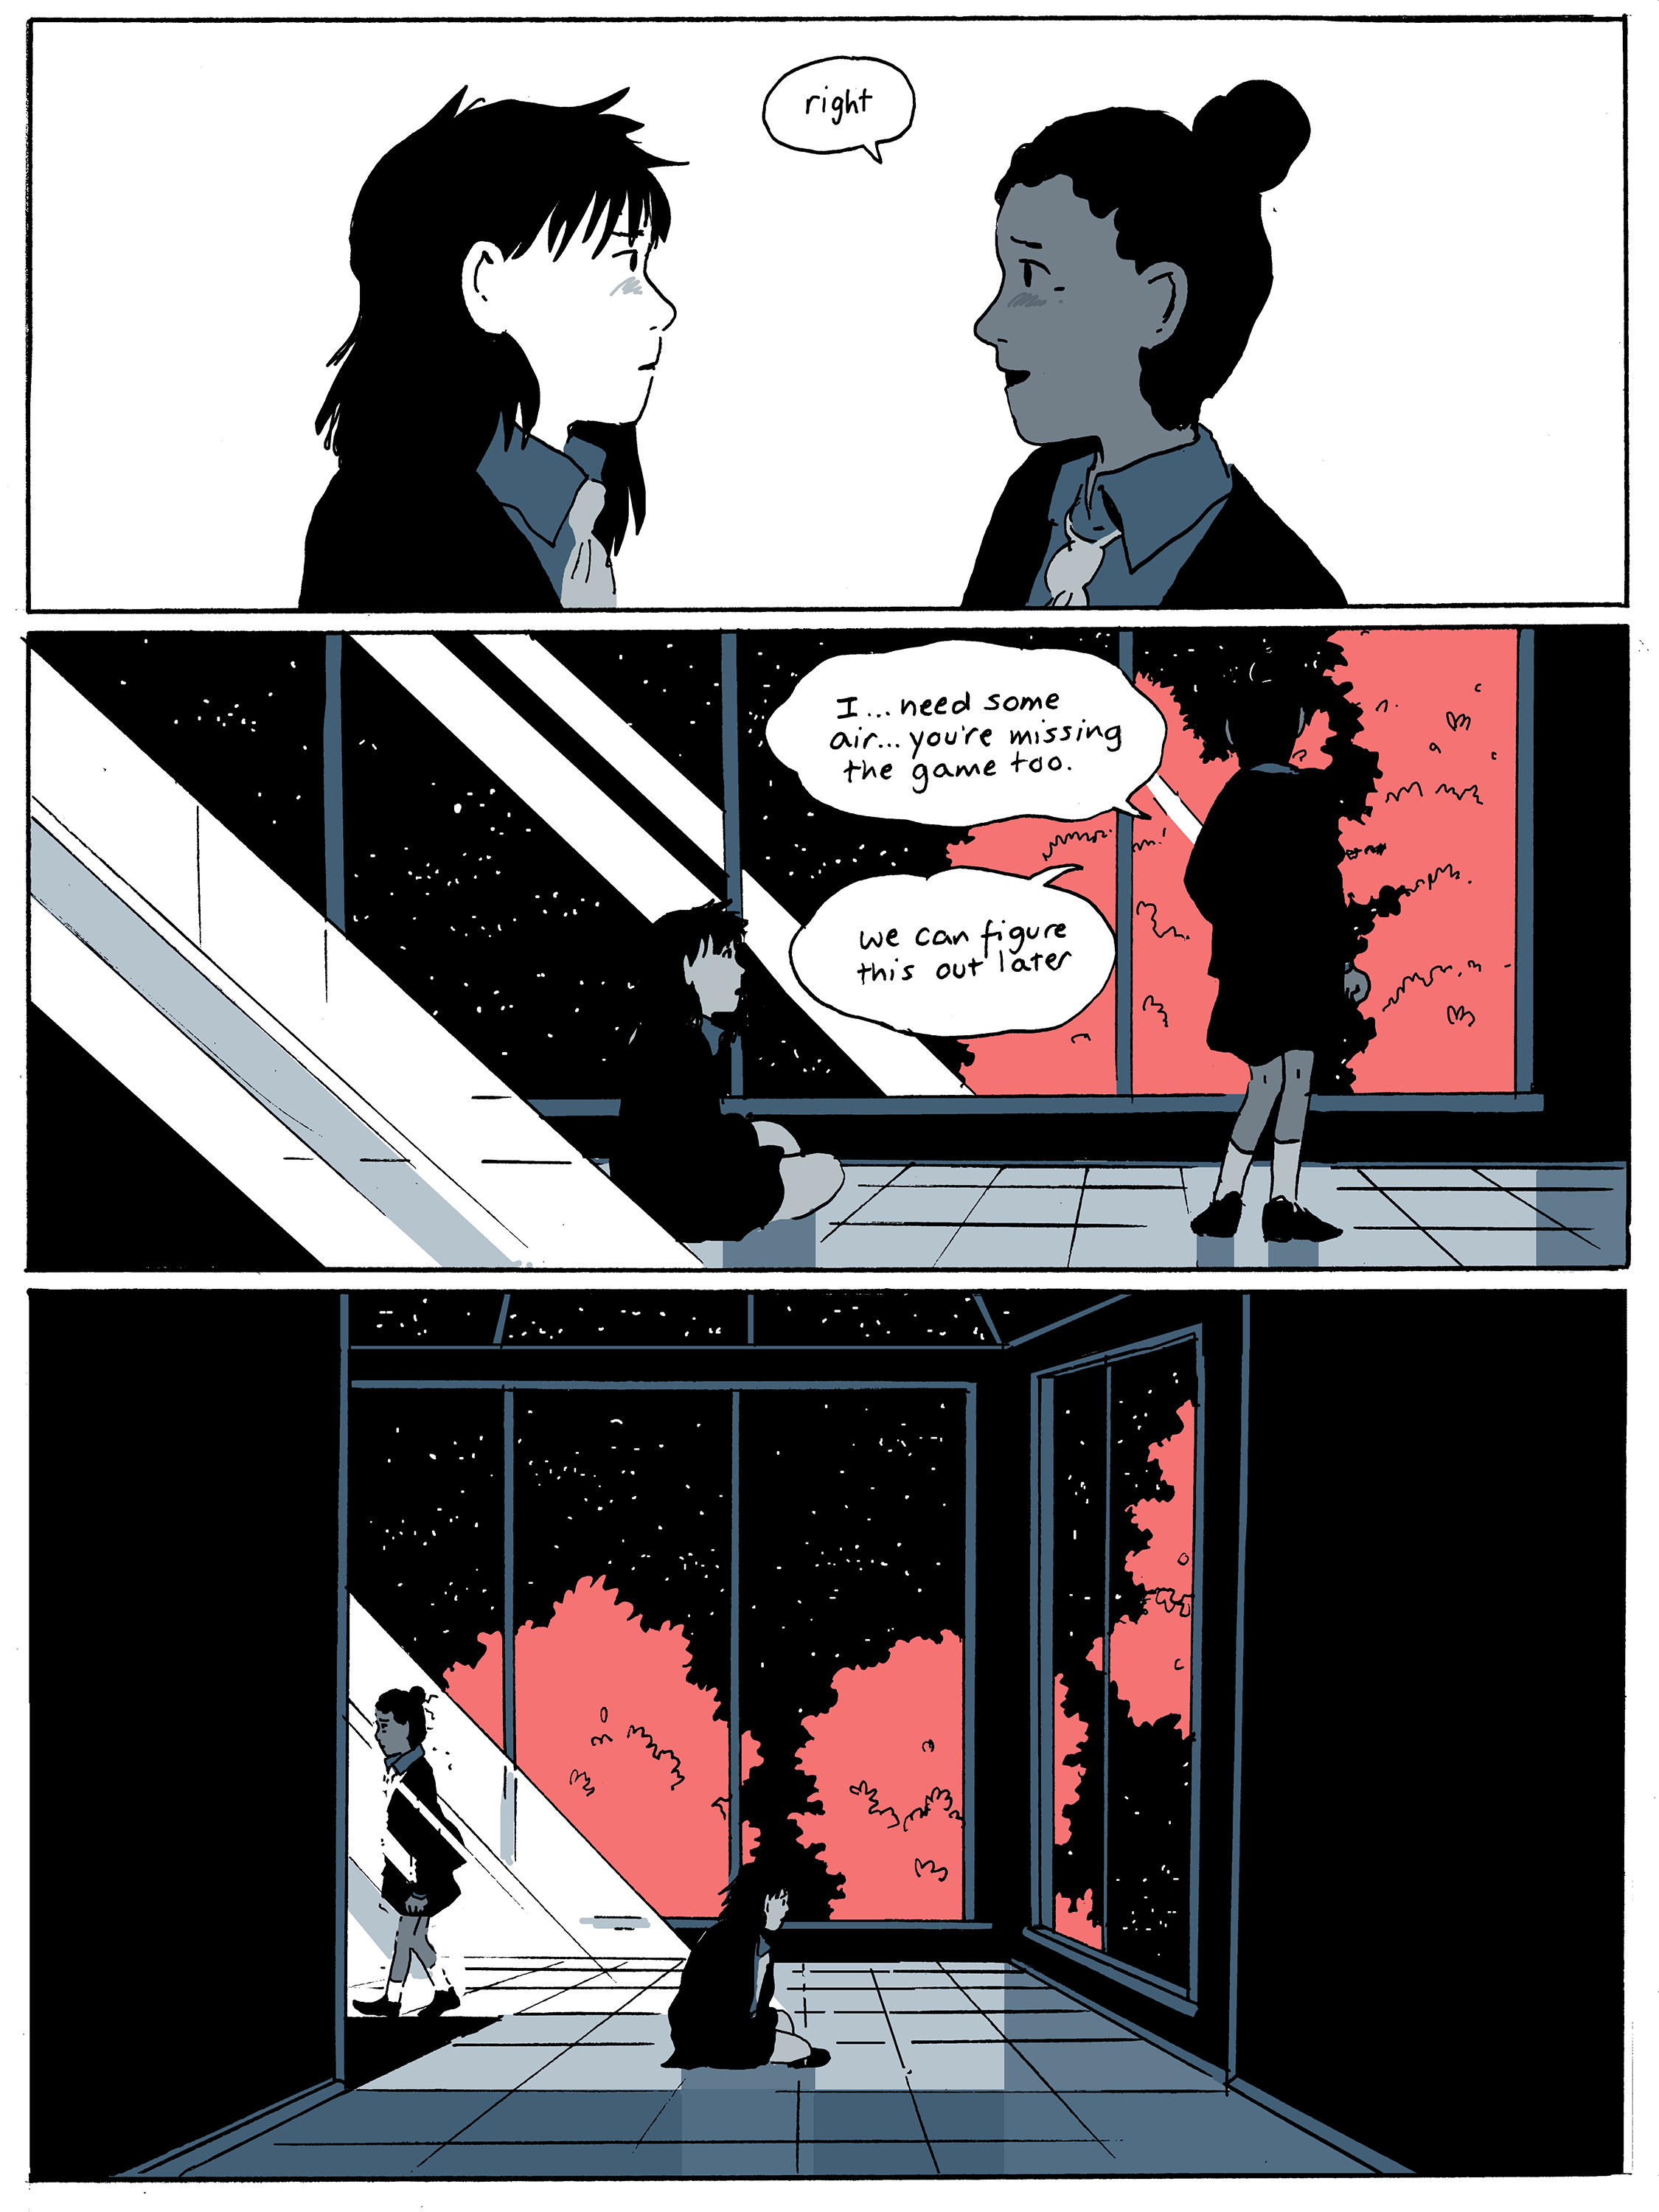 chapter11_page12.jpg